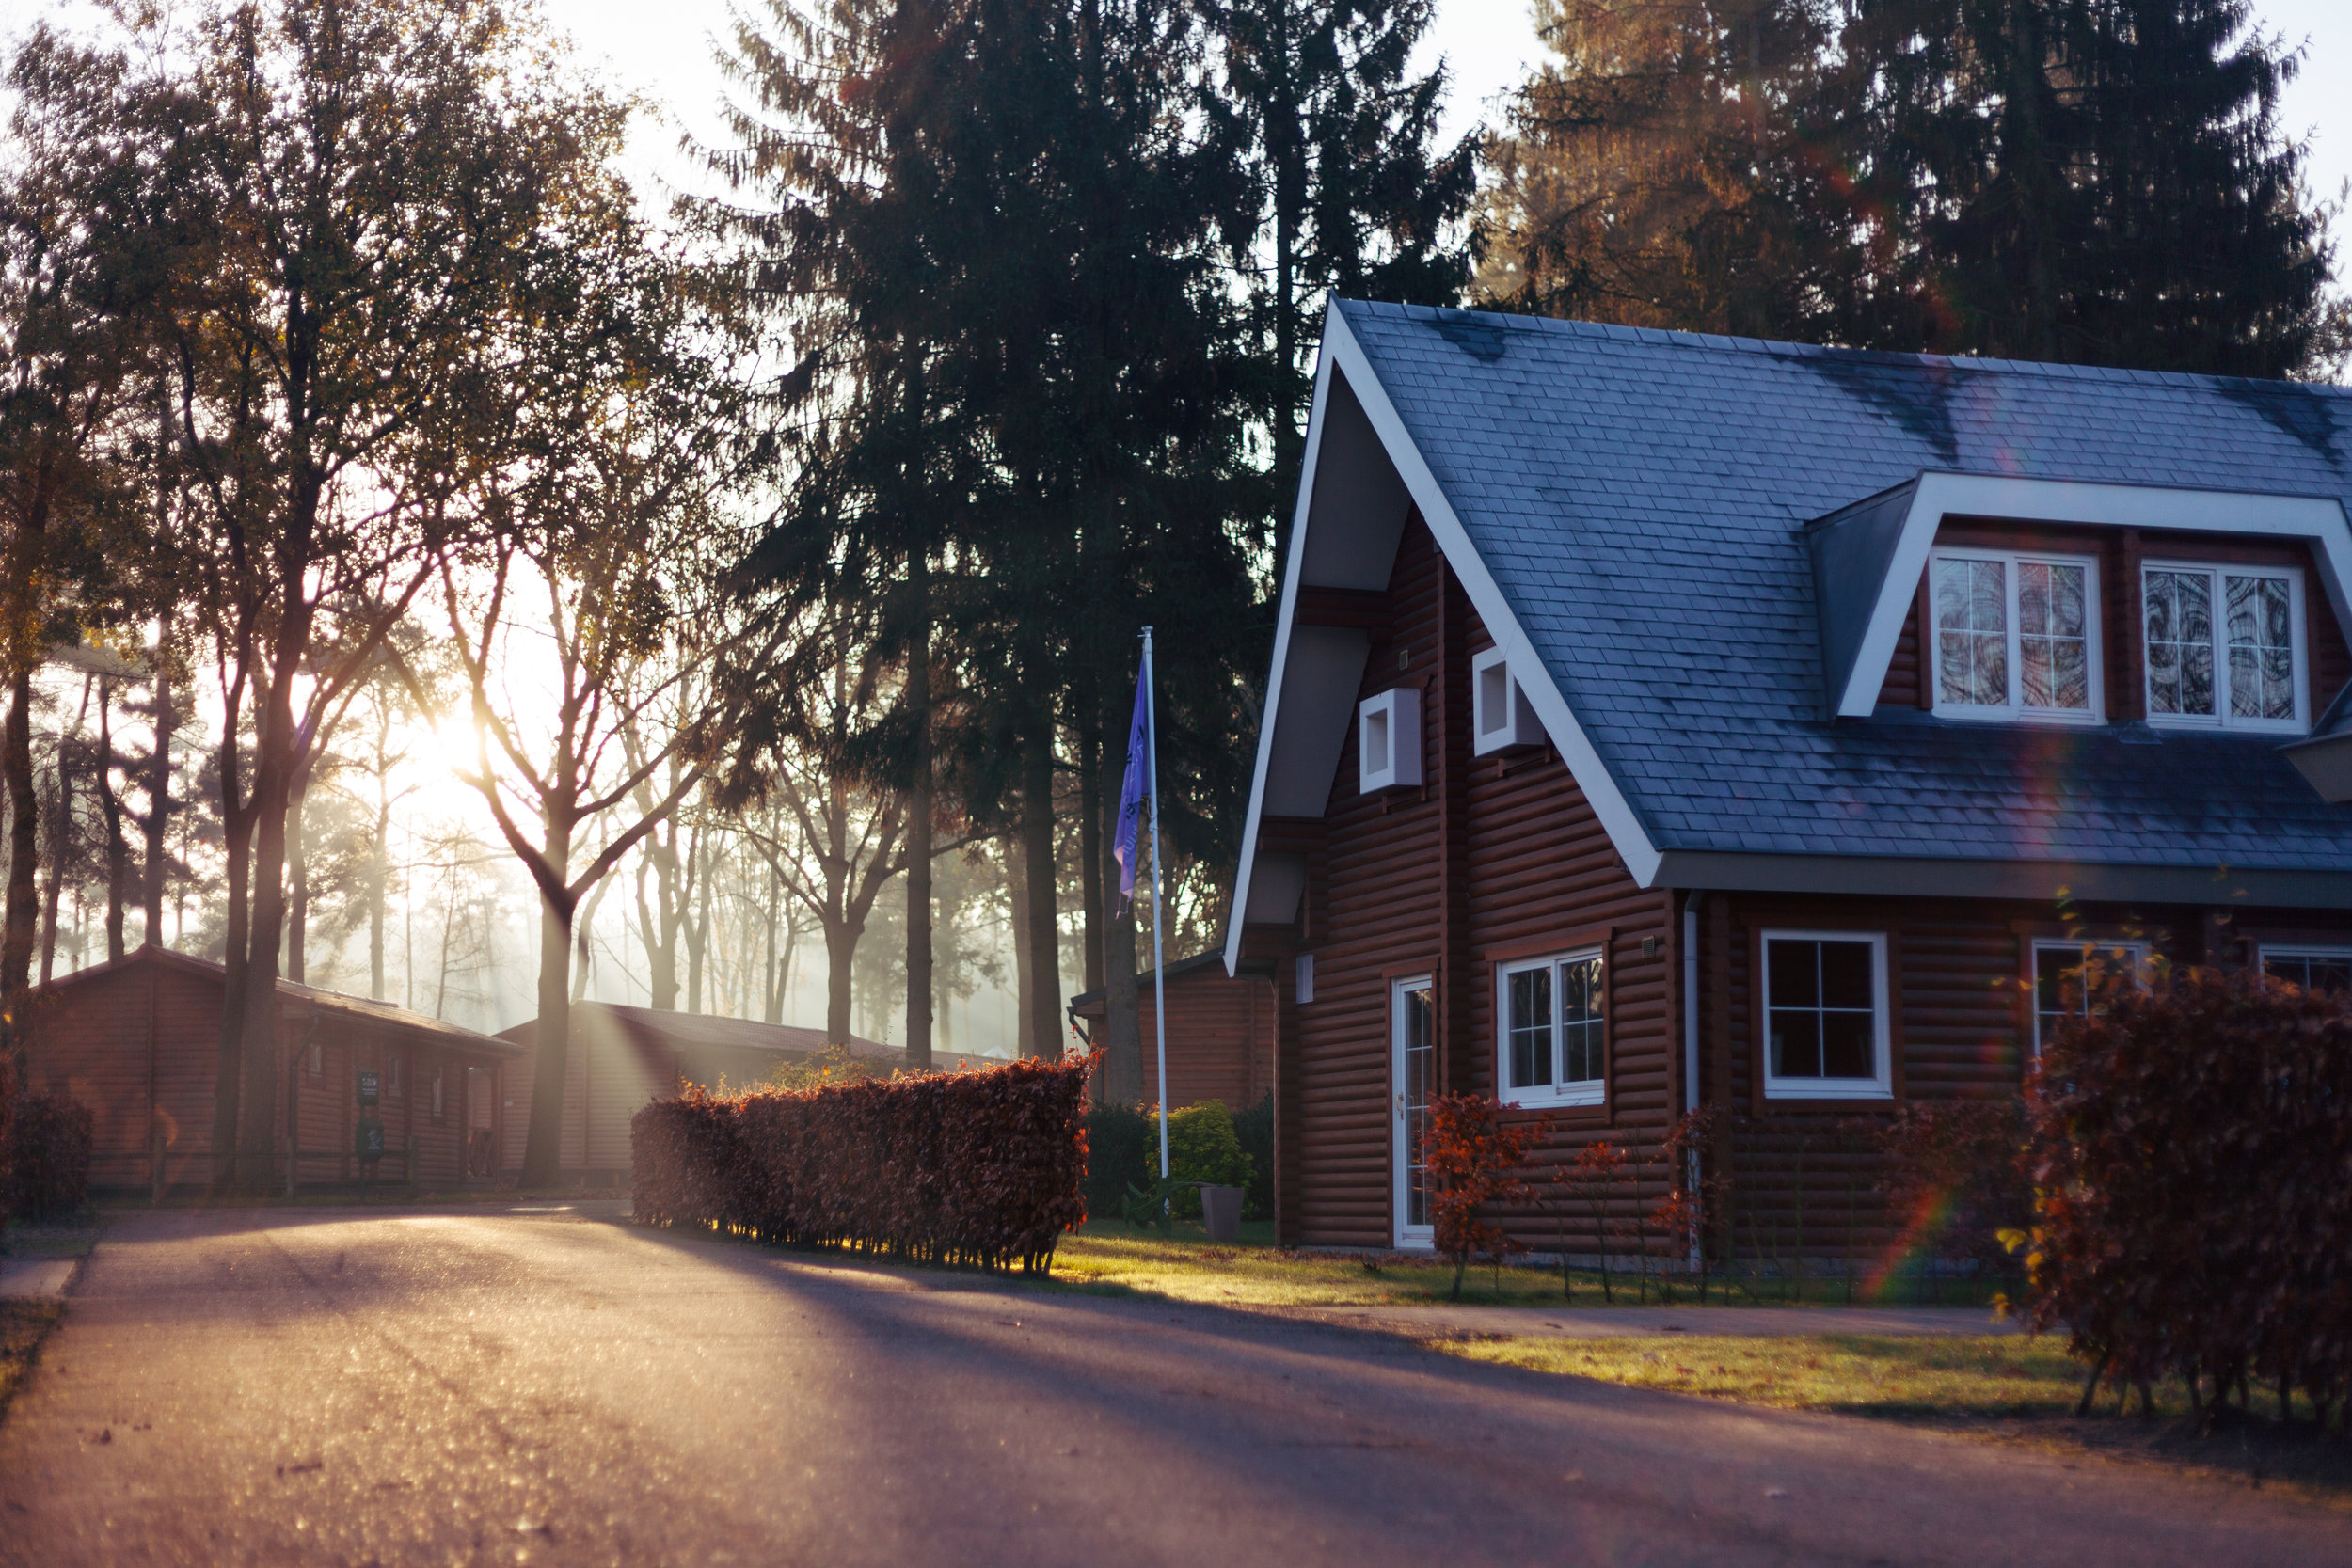 A rental house with a large driveway that leads around a bend where trees stand with light pouring through them.   If you are renting out an additional rental property, you should consider ALL your insurance options.